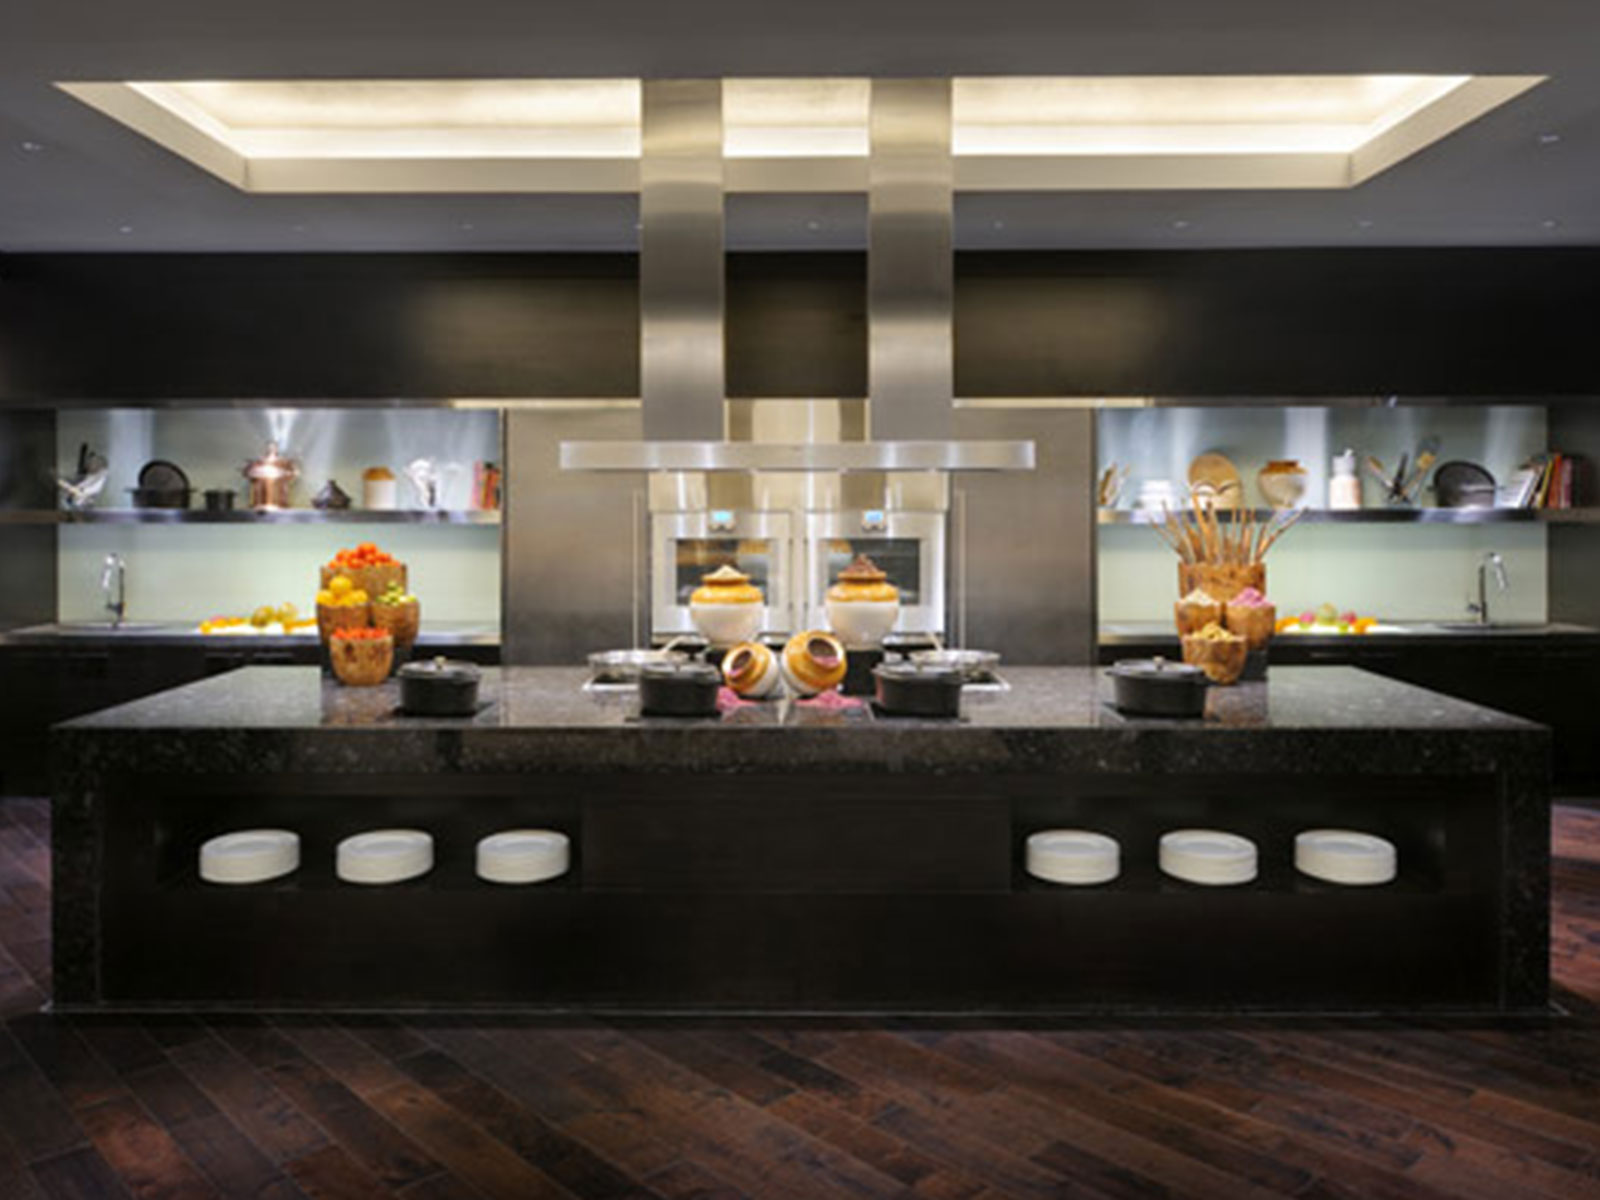 b34 The unexpected stylish look of black kitchen designs